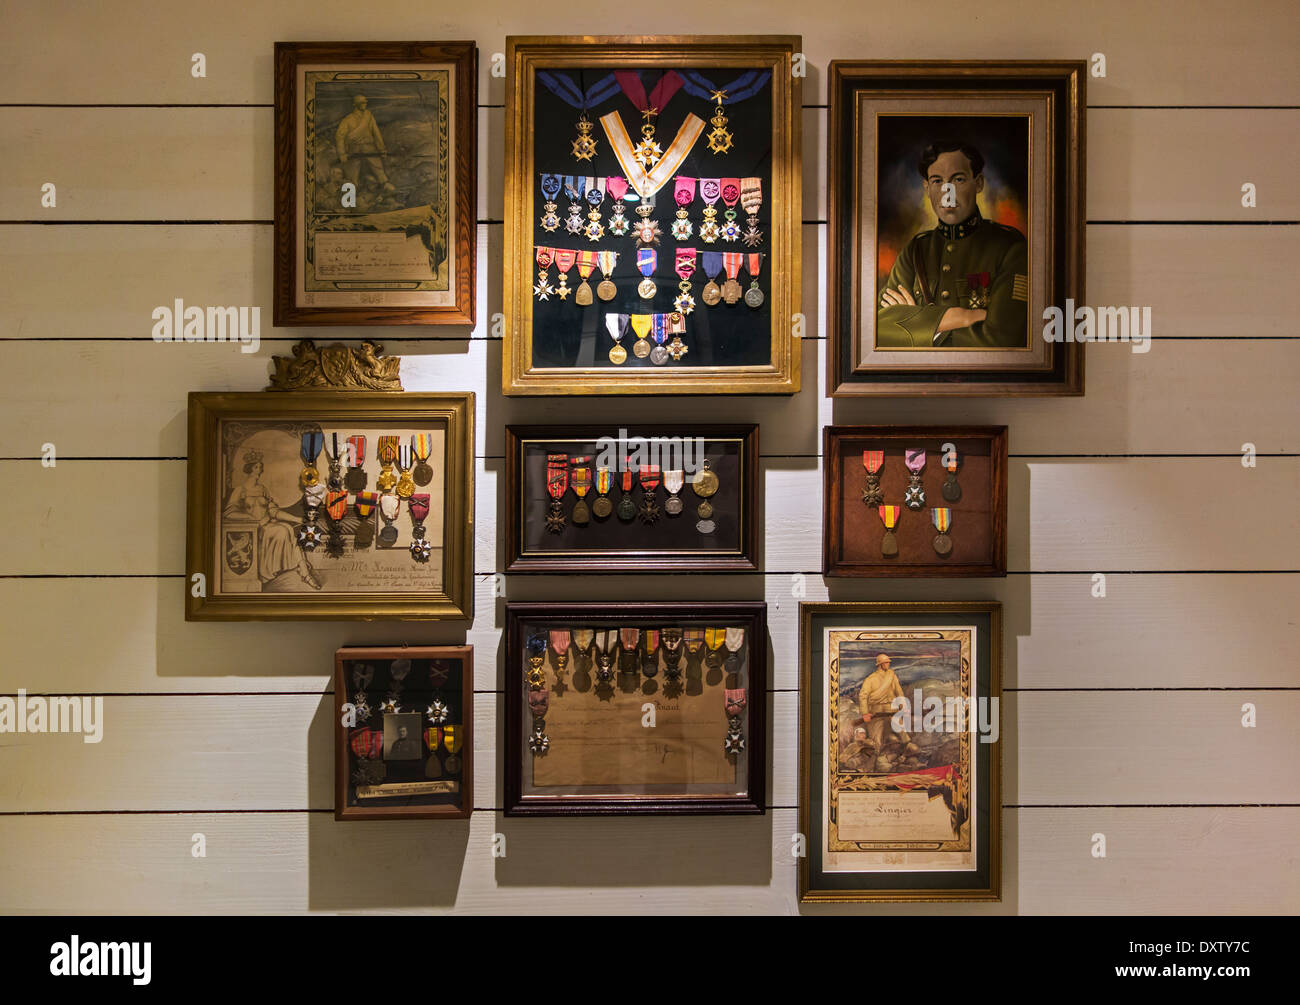 Collection of military medals of Belgian First World War One soldiers at museum inside the IJzertoren / Yser Tower, Belgium - Stock Image